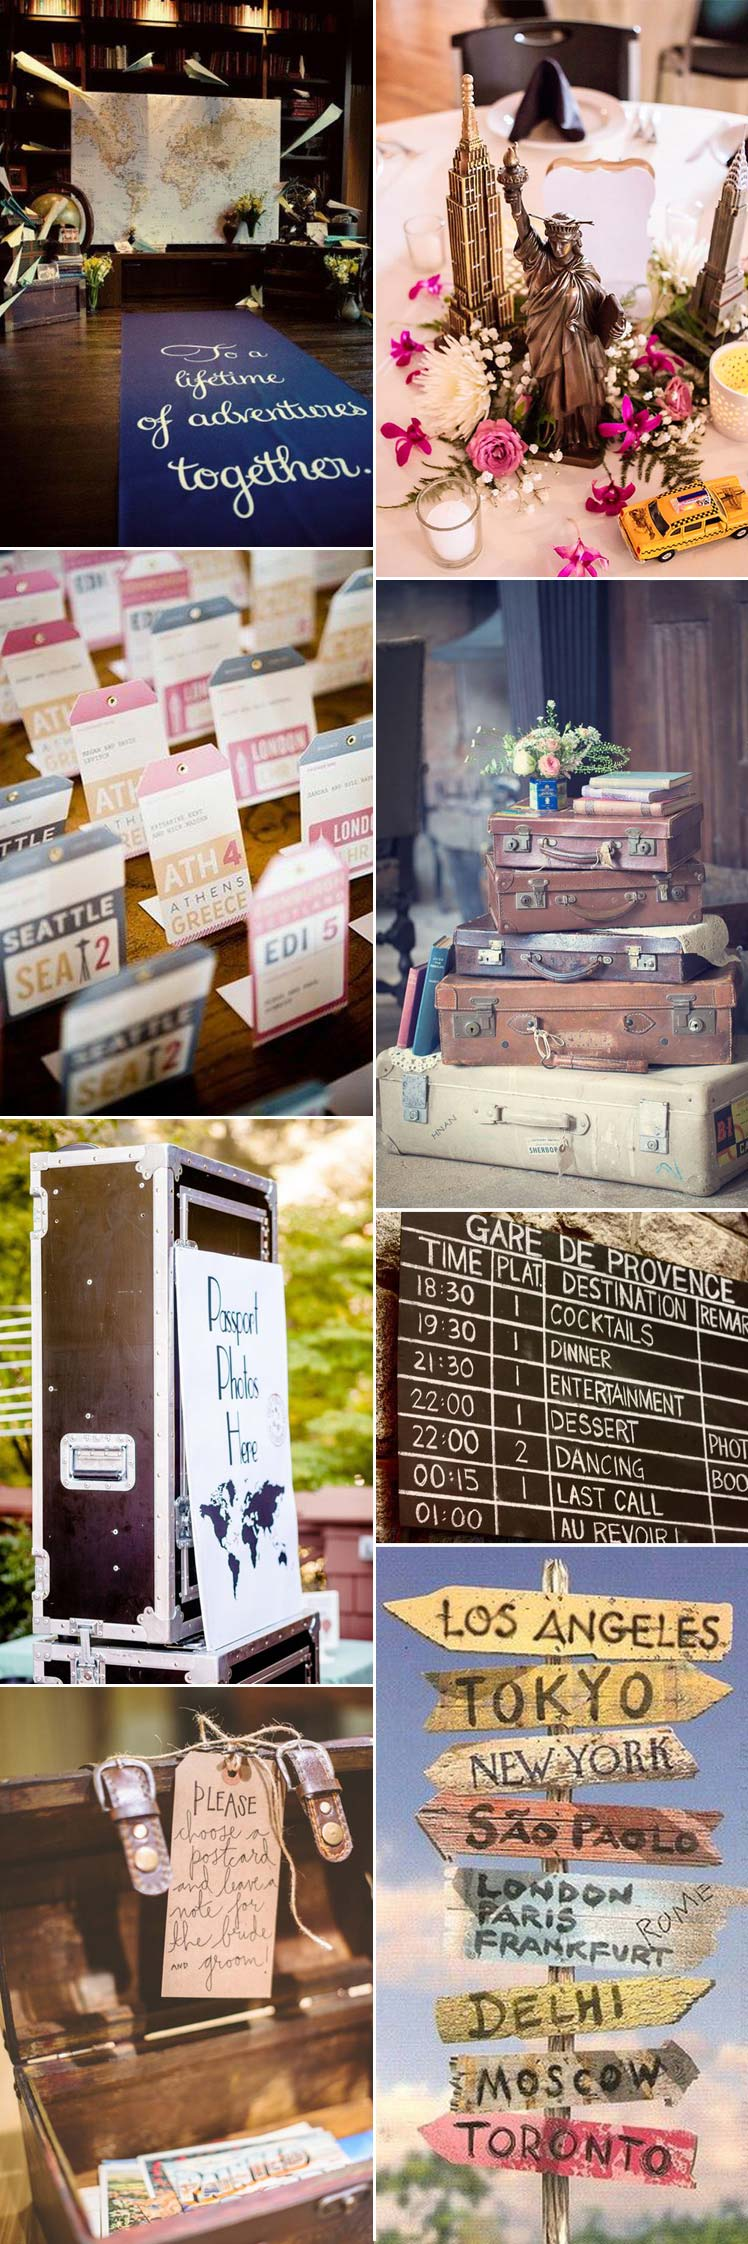 Travel themed wedding inspiration